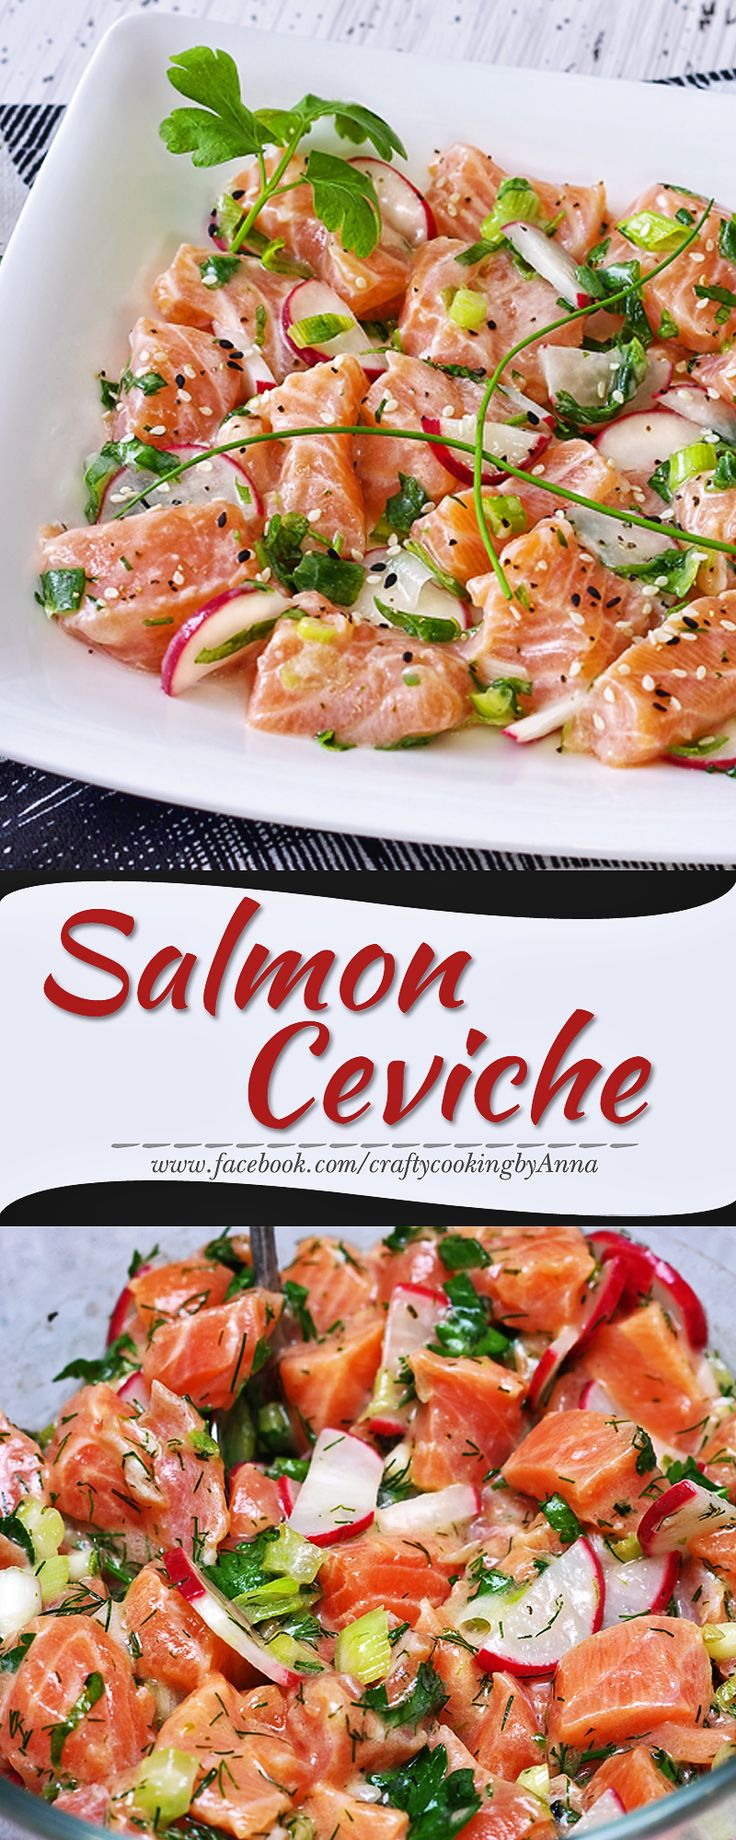 Salmon Ceviche #spicy #recipe #diy